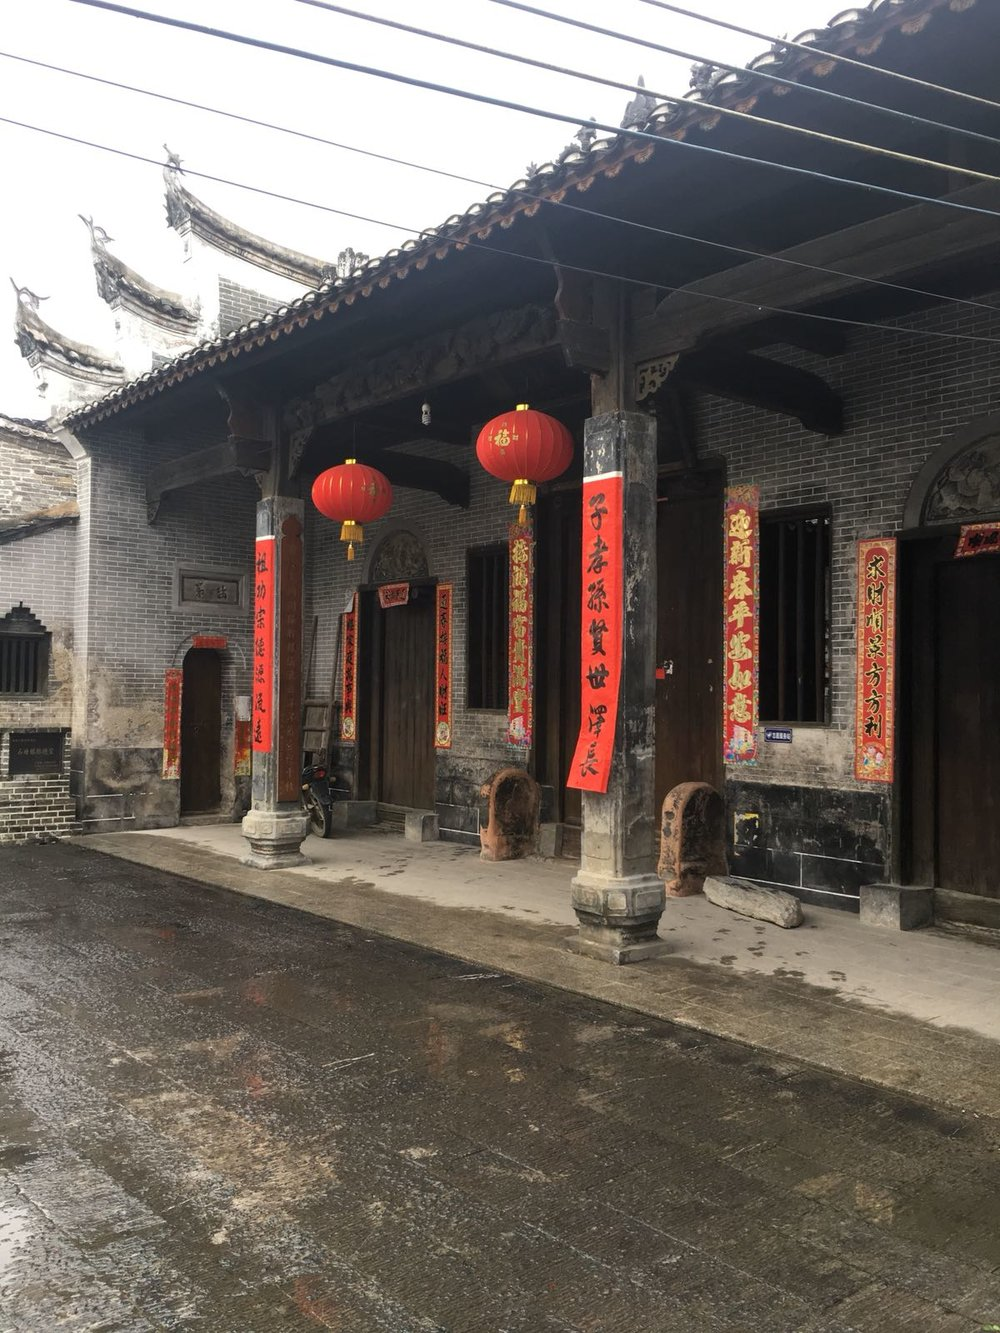 Shuang Feng Fort and Shitang Hakka Village, RASHK Trip to Shaoguan and Northern Guangdong 2018 (c) Michael Broom